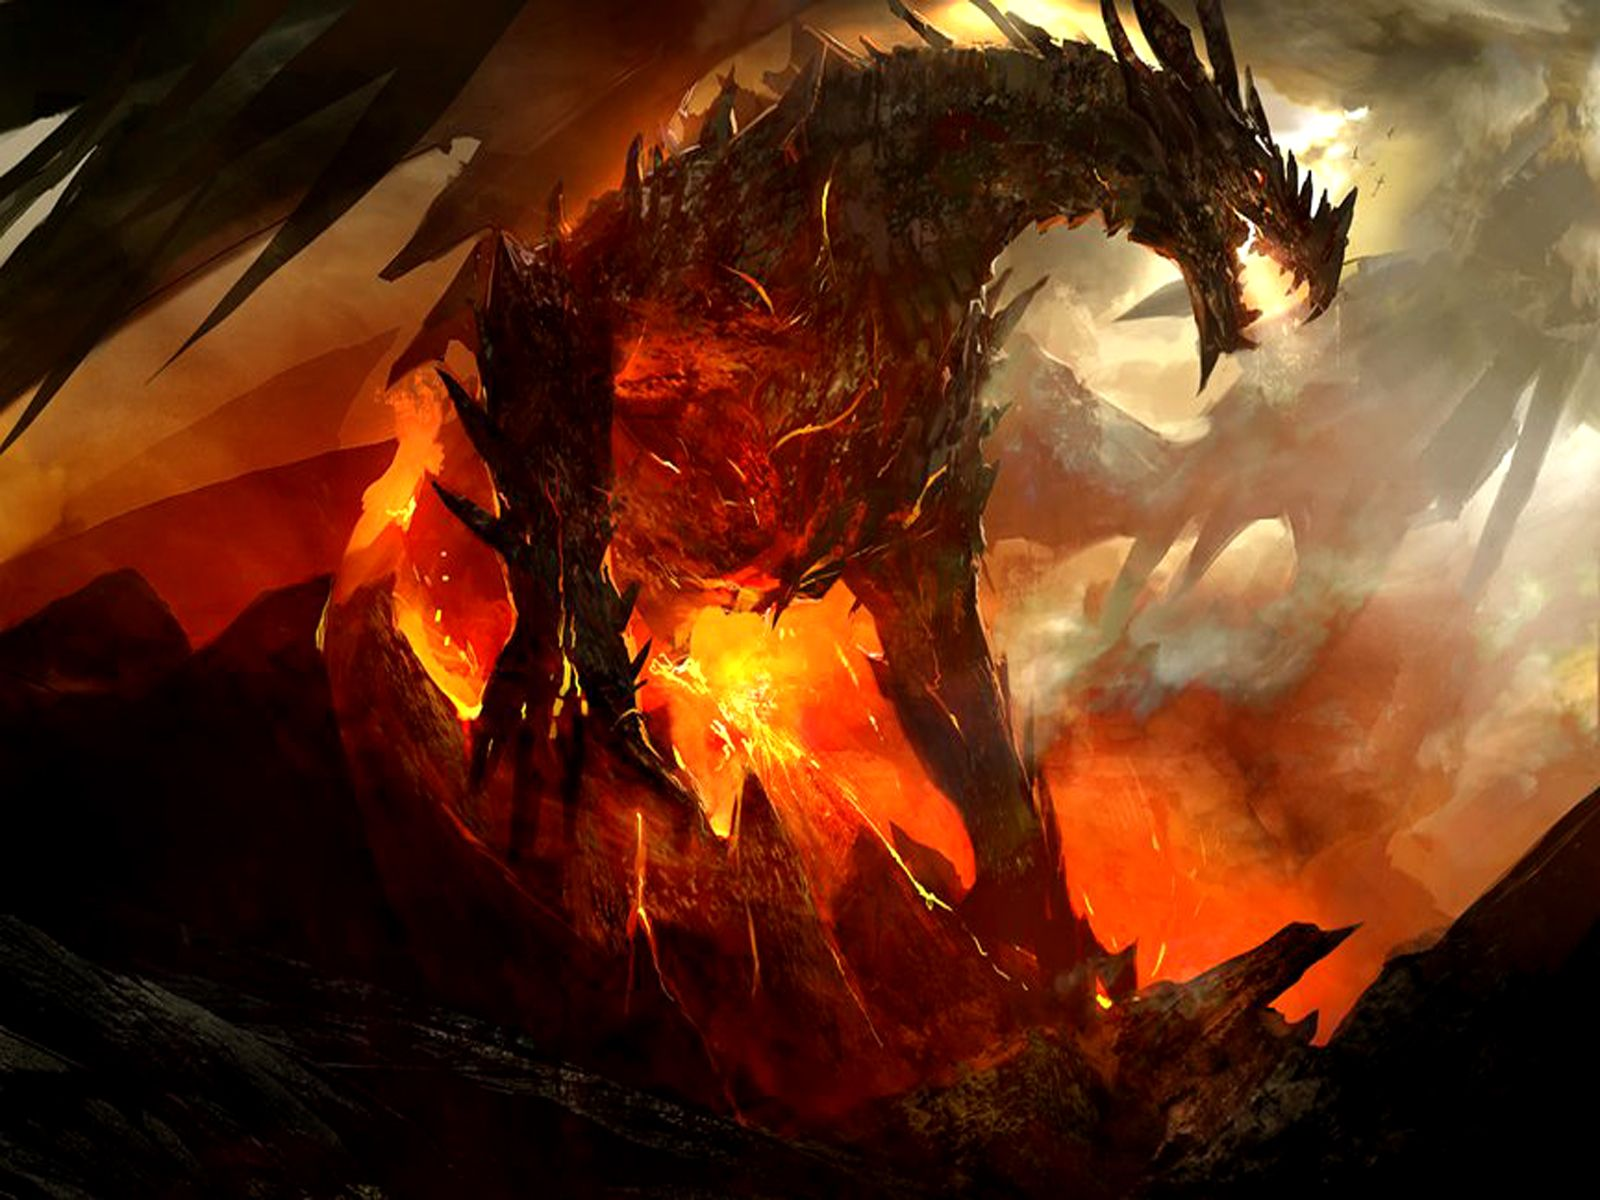 Pin By Lin Kerns On Hic Sunt Dracones